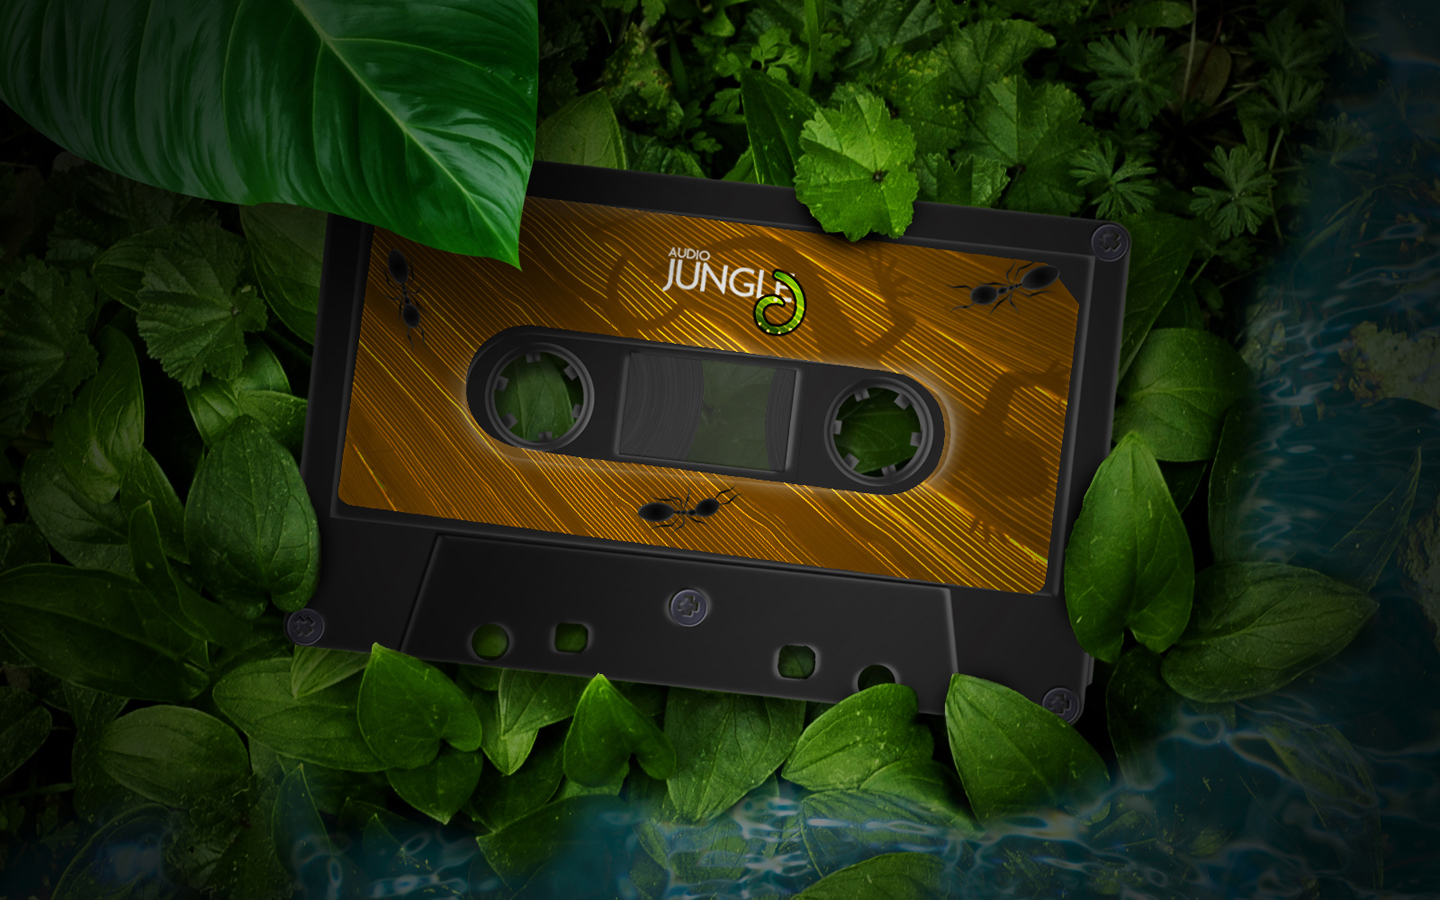 WALLPAPERS OF JUNGLE 25286 2529